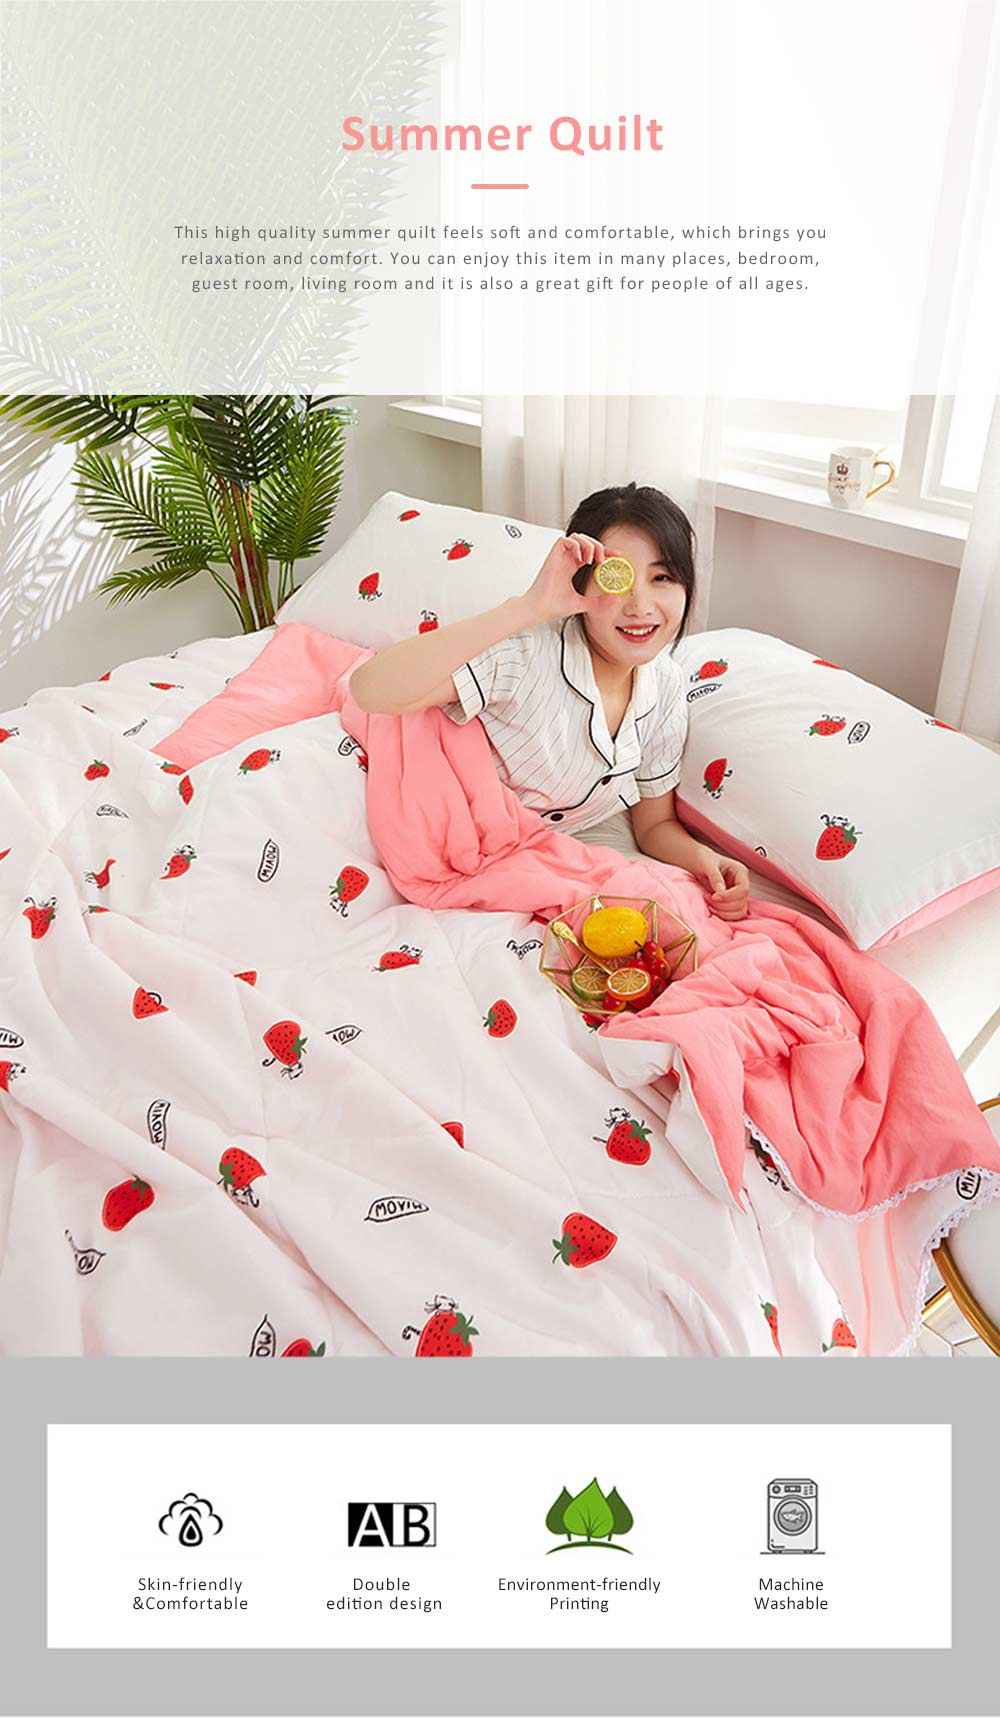 Eco-friendly Printing Thin Quilt for Summer, Skin-friendly Polyester Material Cool Blanket 0